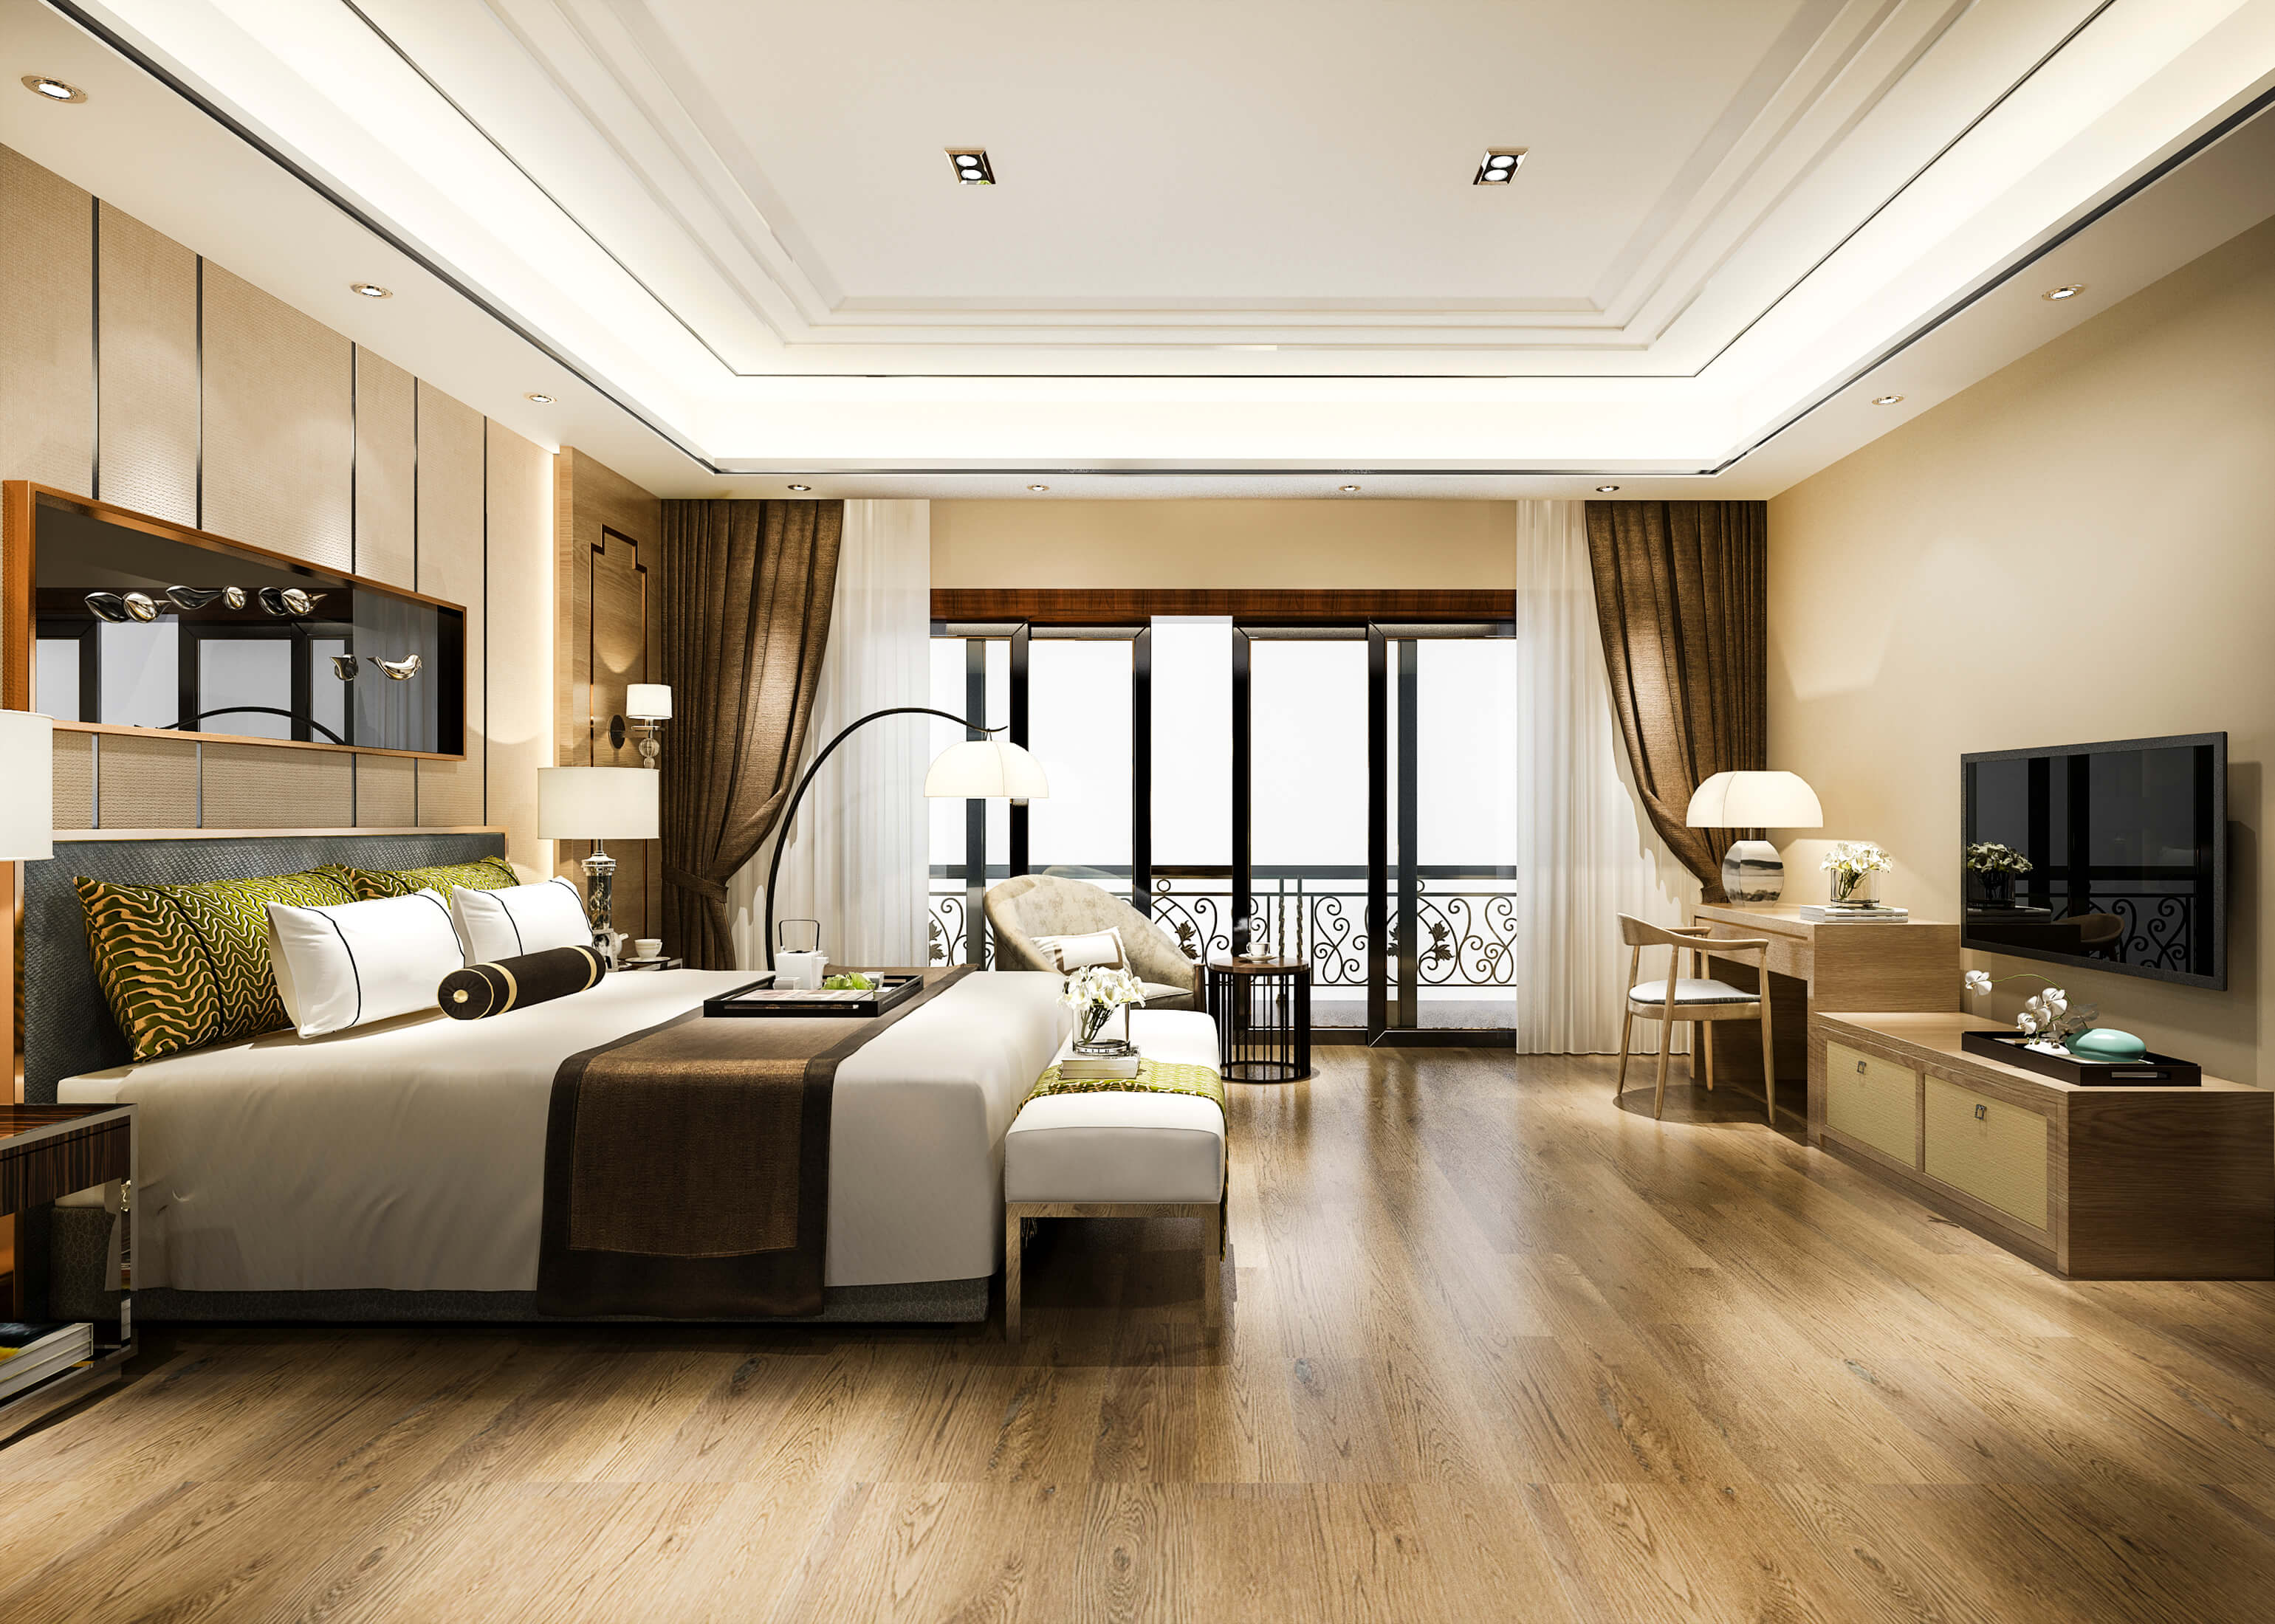 luxury-bedroom-suite-resort-high-rise-hotel-with-working-table